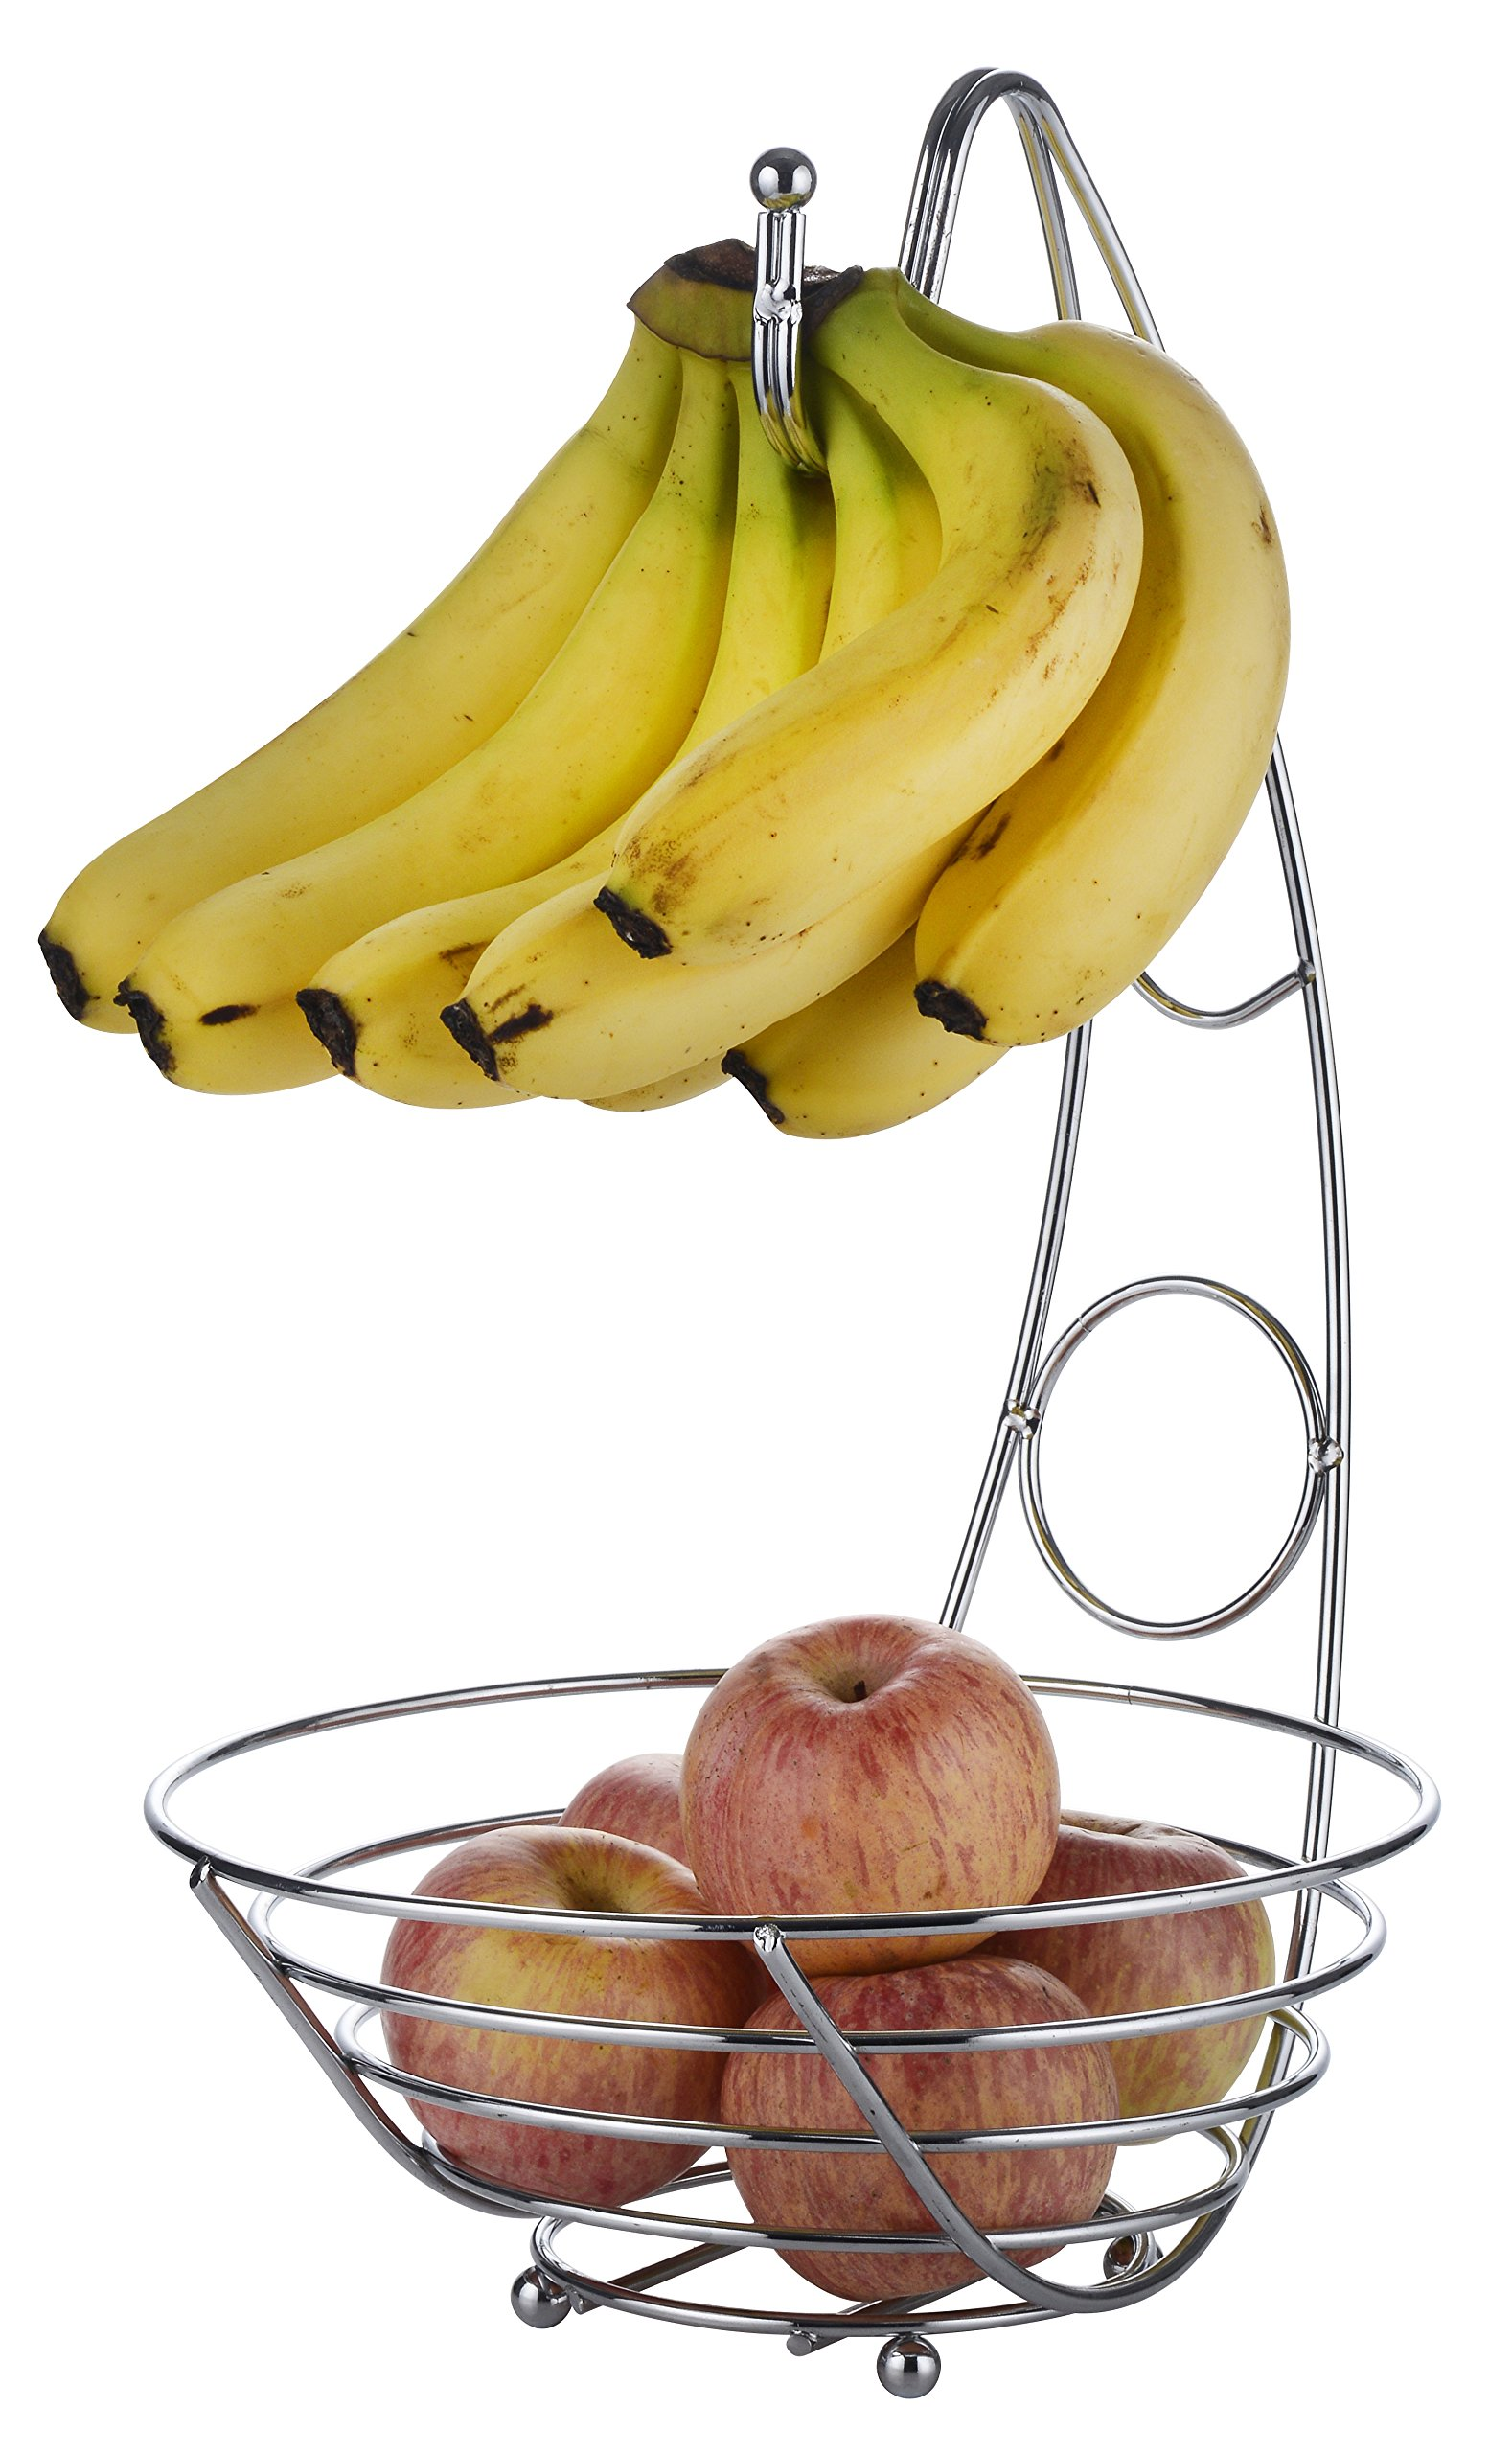 EXZACT EX-FB017 Fruit Basket 43 cm Tall, Wired Fruit Bowl with Banana Hook, Silvery Chrome Finish (Fruit Basket)